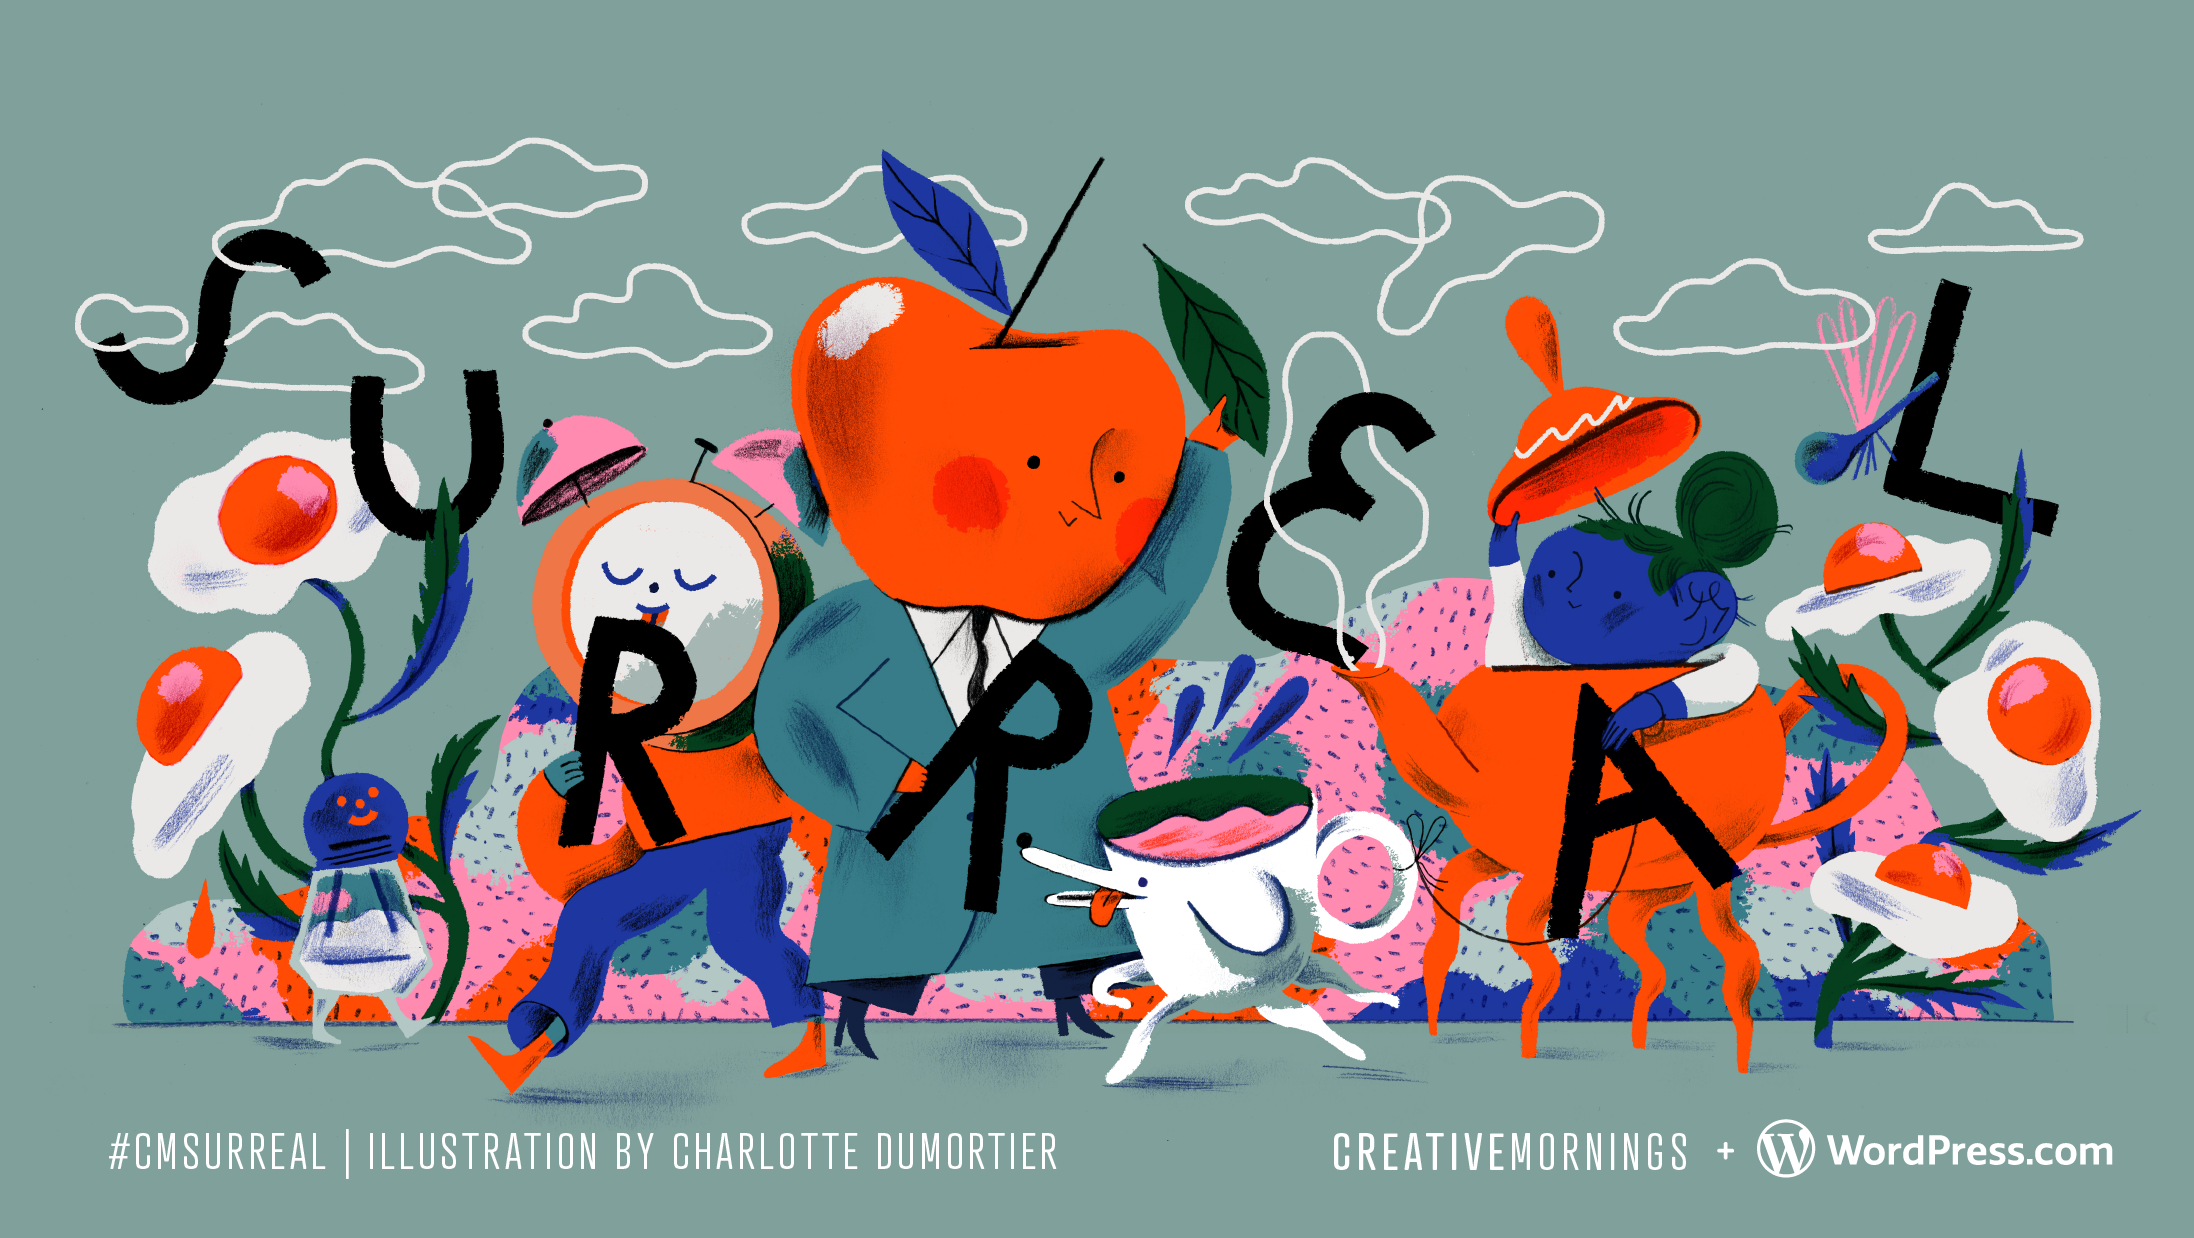 Surreal_Illustration_Layout_creativemornings.com_themepage.png